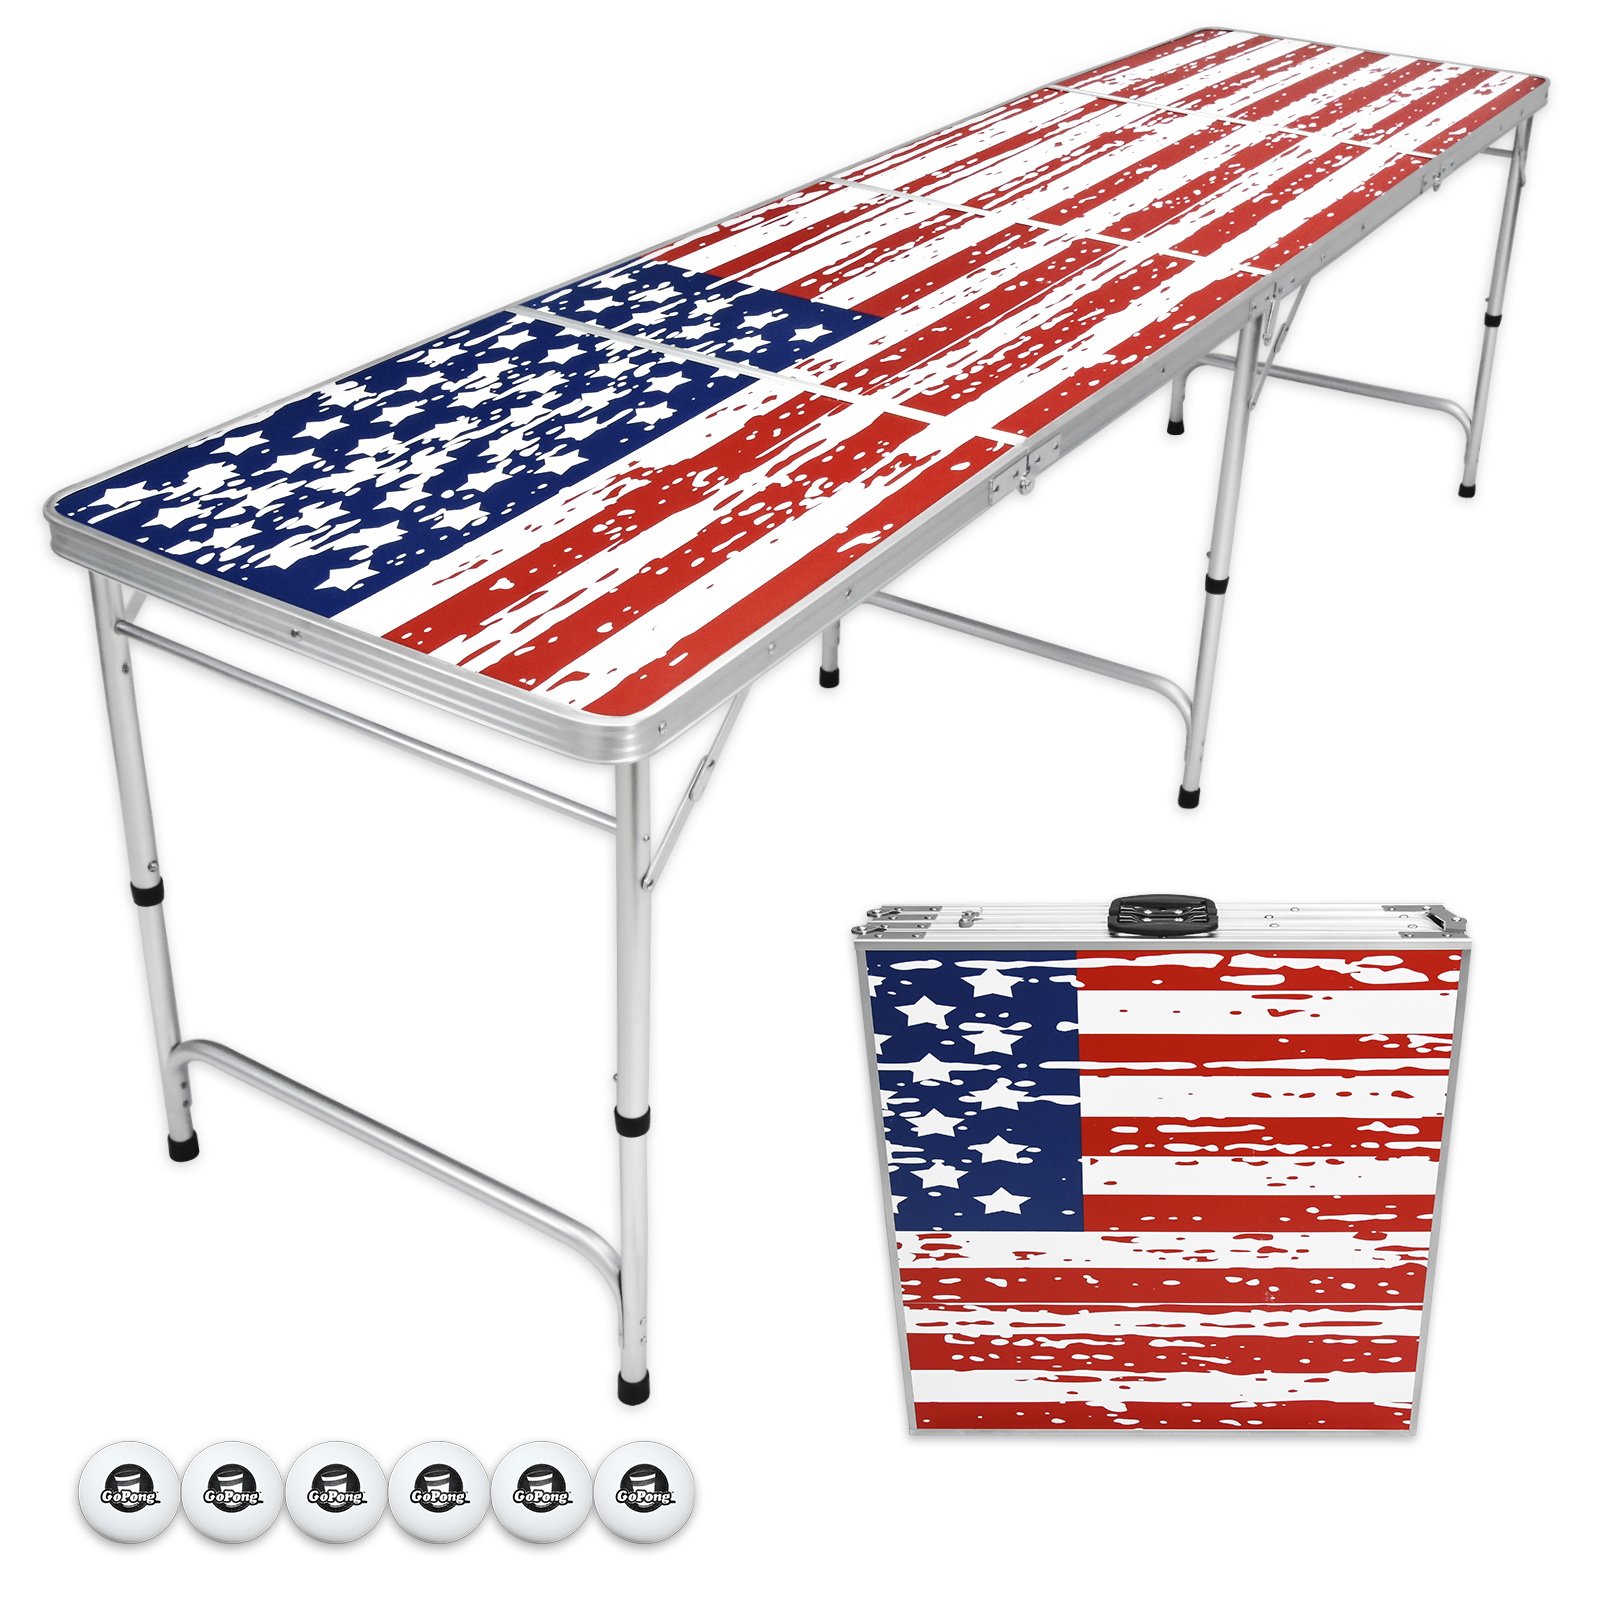 GoPong 8' Foldable American Flag Portable Beer Pong Table for Indoor Outdoor Folding Party Drinking Game Table, 6 Balls Included